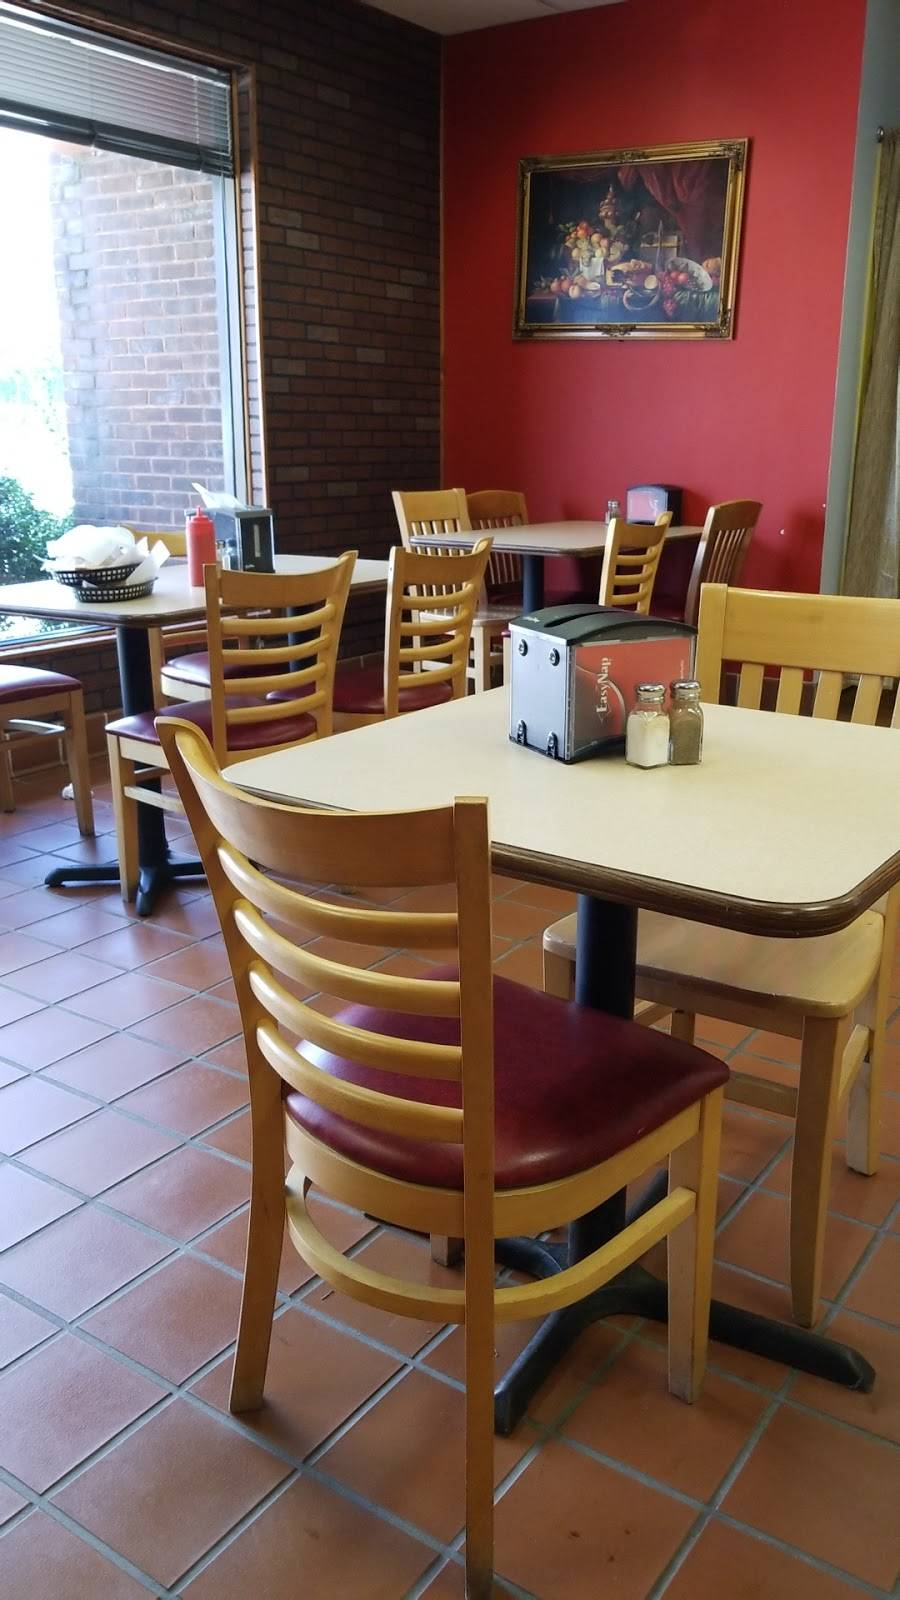 Gateway Pizza   meal delivery   10840 Little Patuxent Pkwy, Columbia, MD 21044, USA   4107729333 OR +1 410-772-9333